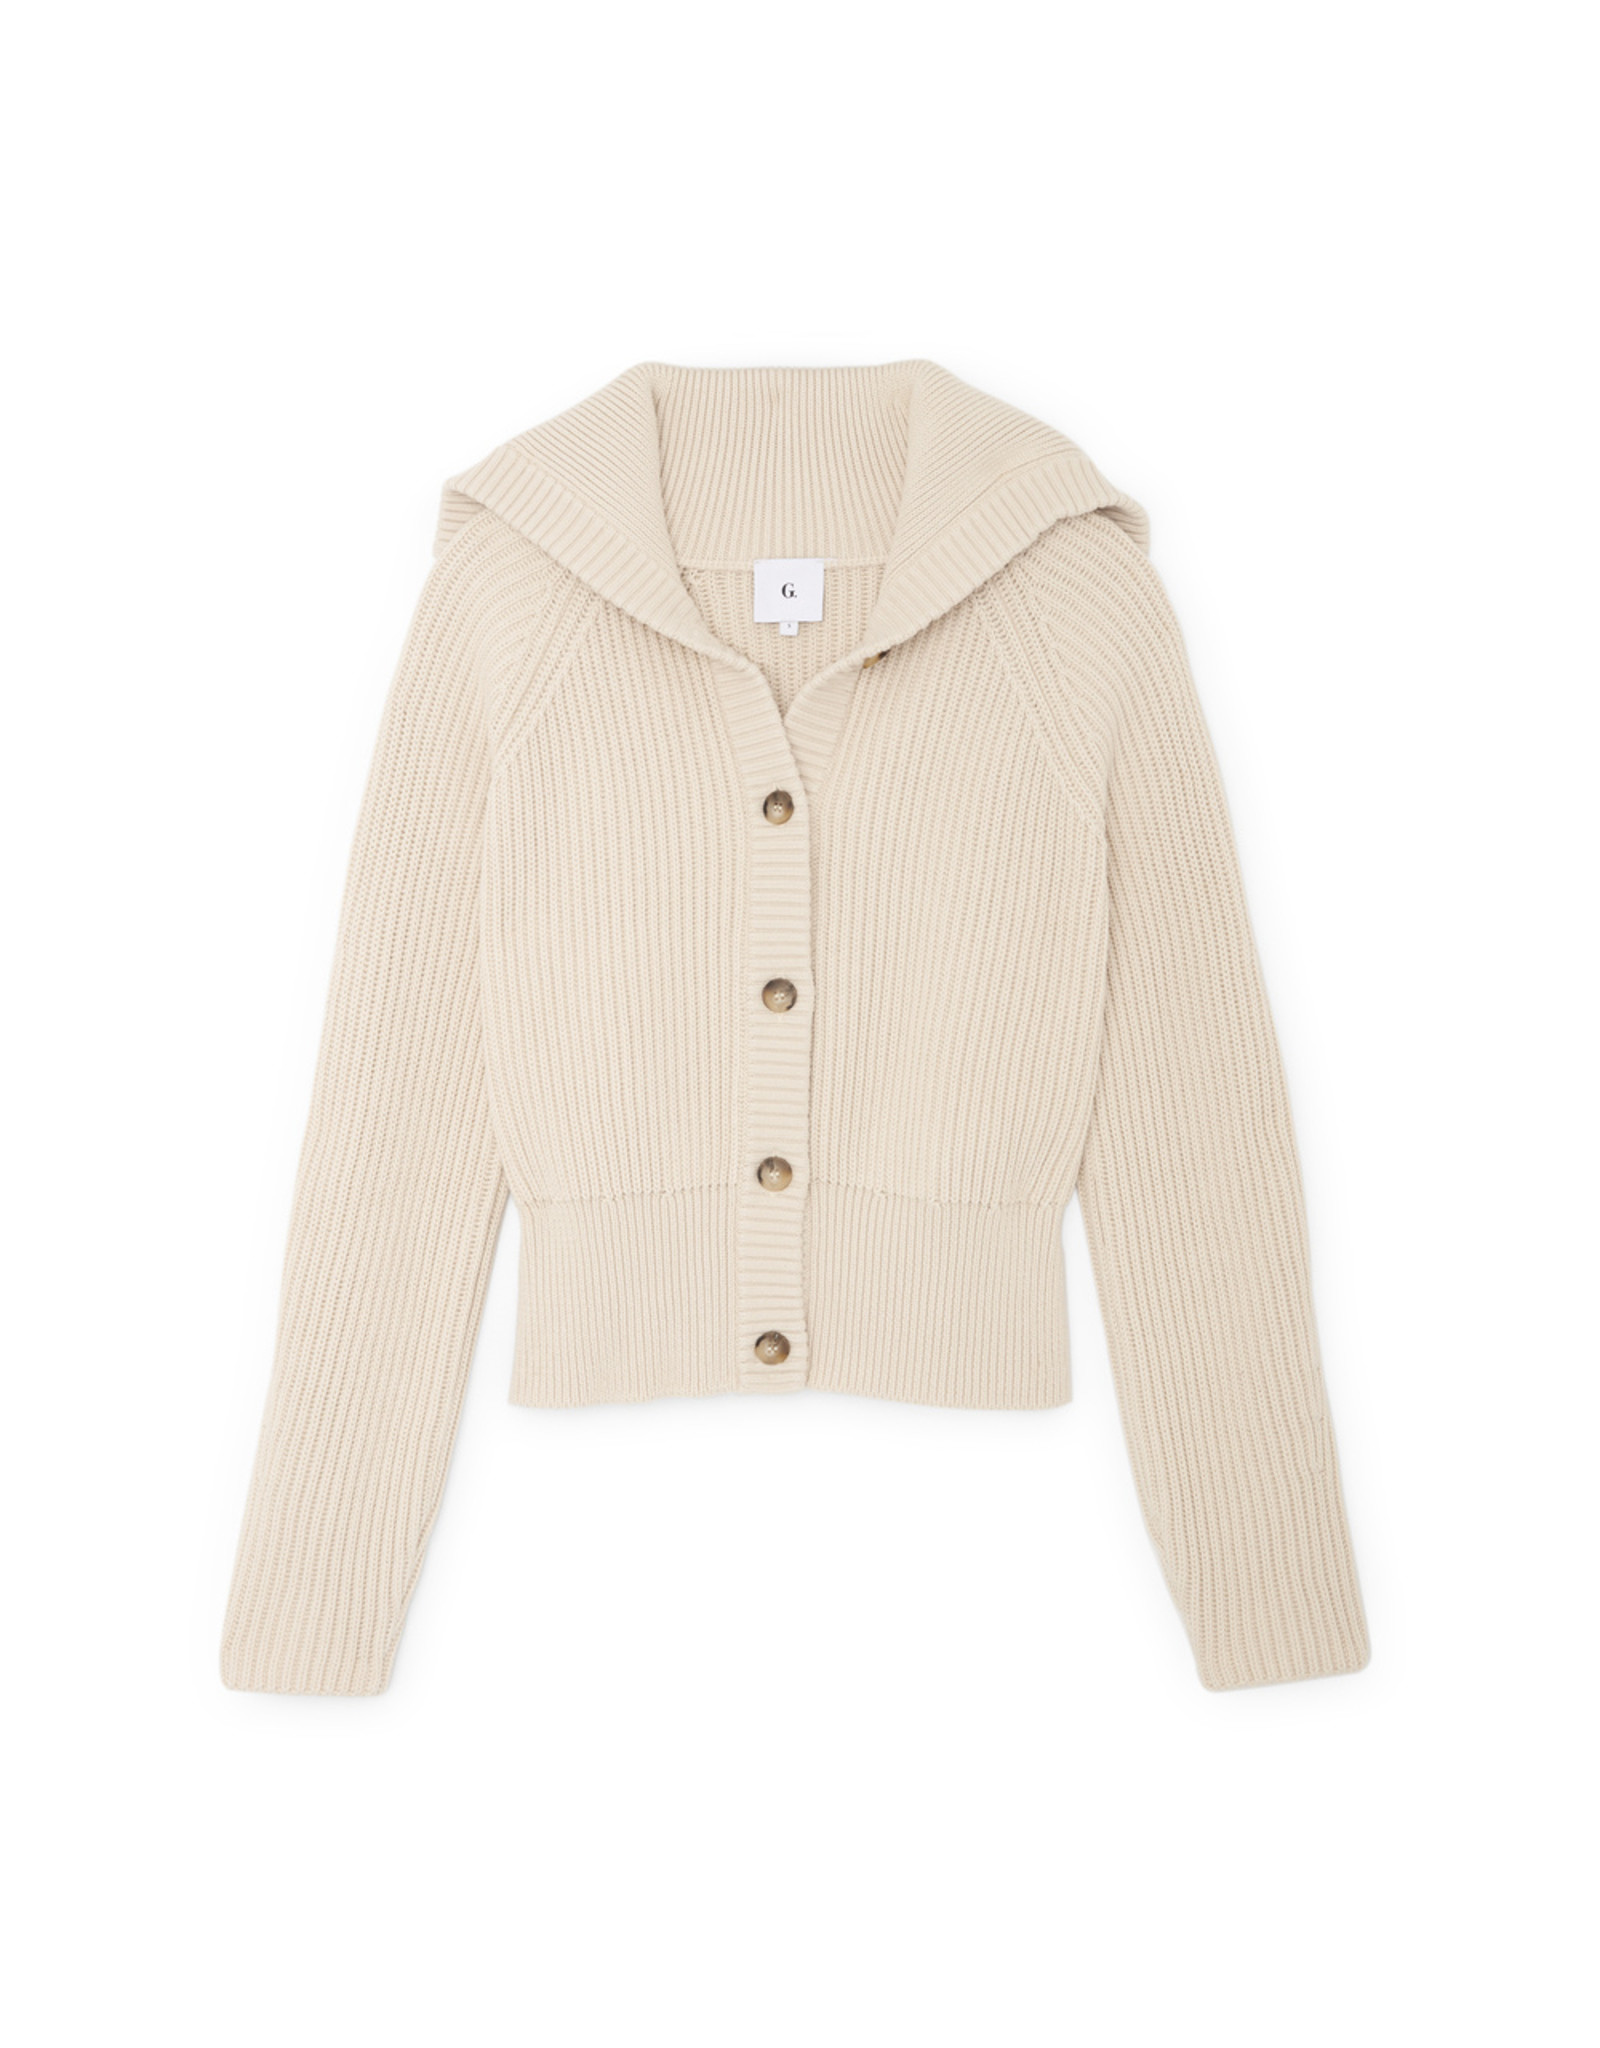 G. Label Bella Button Bomber Cardigan (Color: Ivory, Size: L)